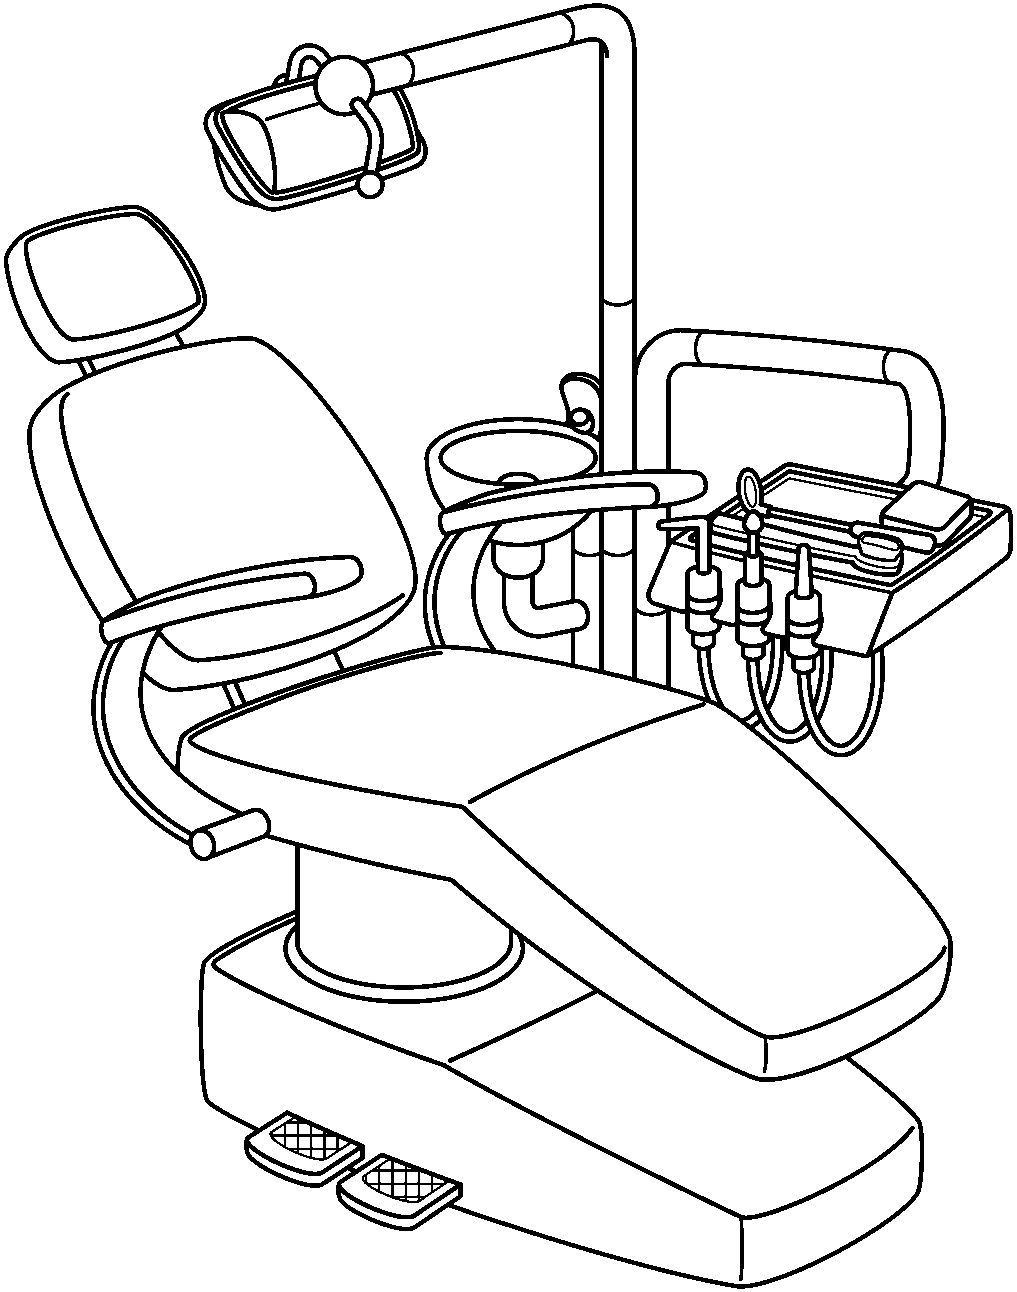 Dentist Tools Clipart Black And White Clipartuse Dentist Dental Clip Art